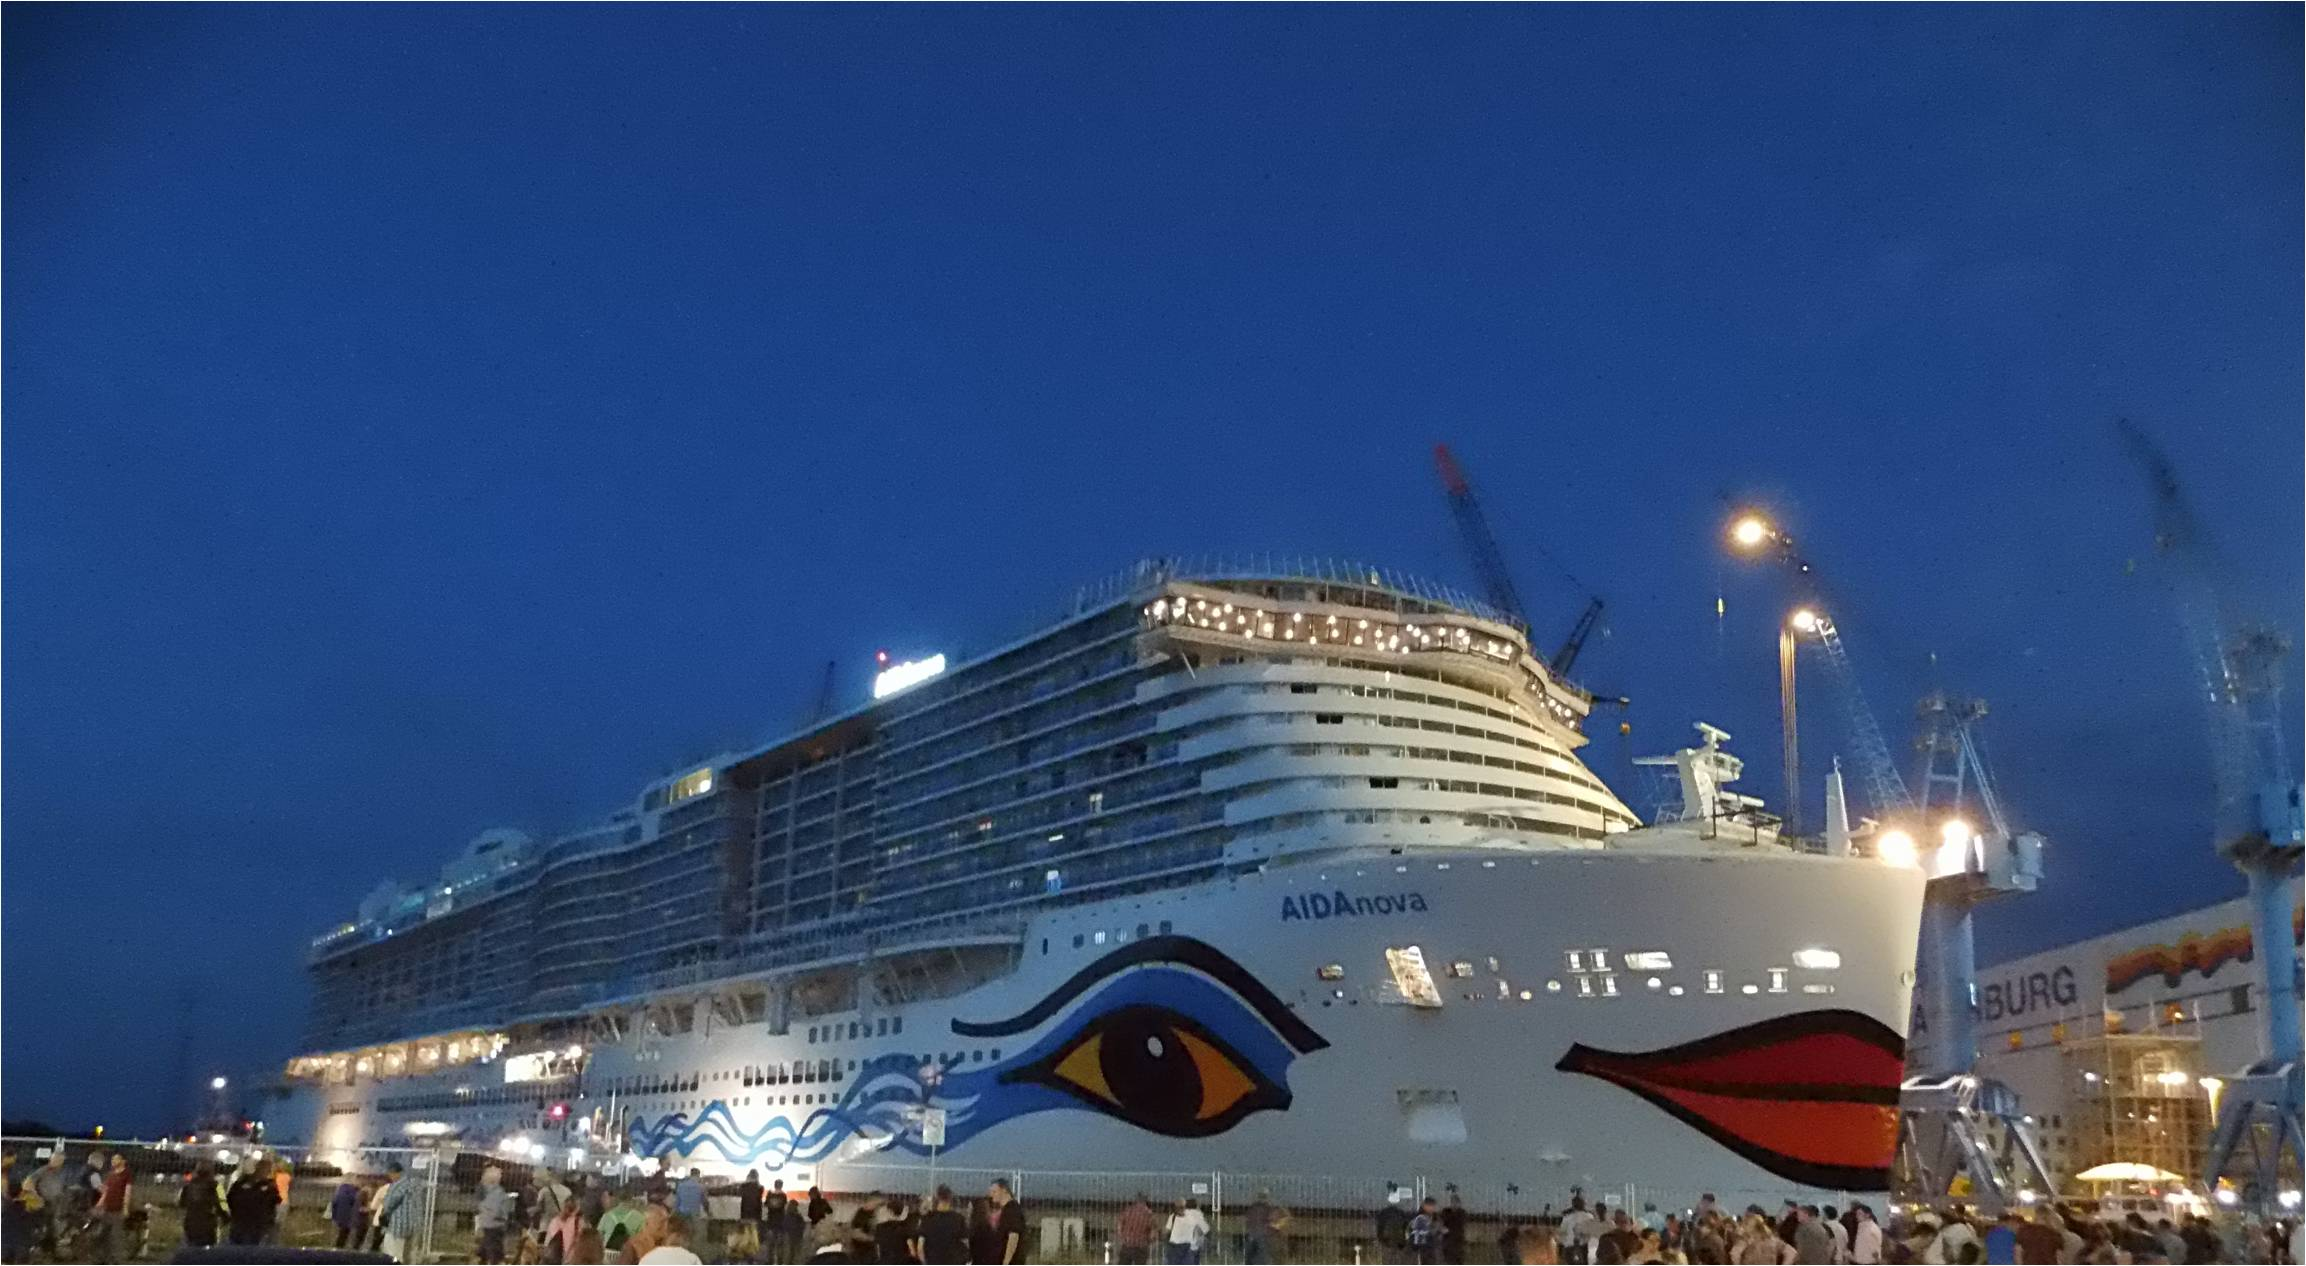 Excellence-class cruise ship - Wikipedia